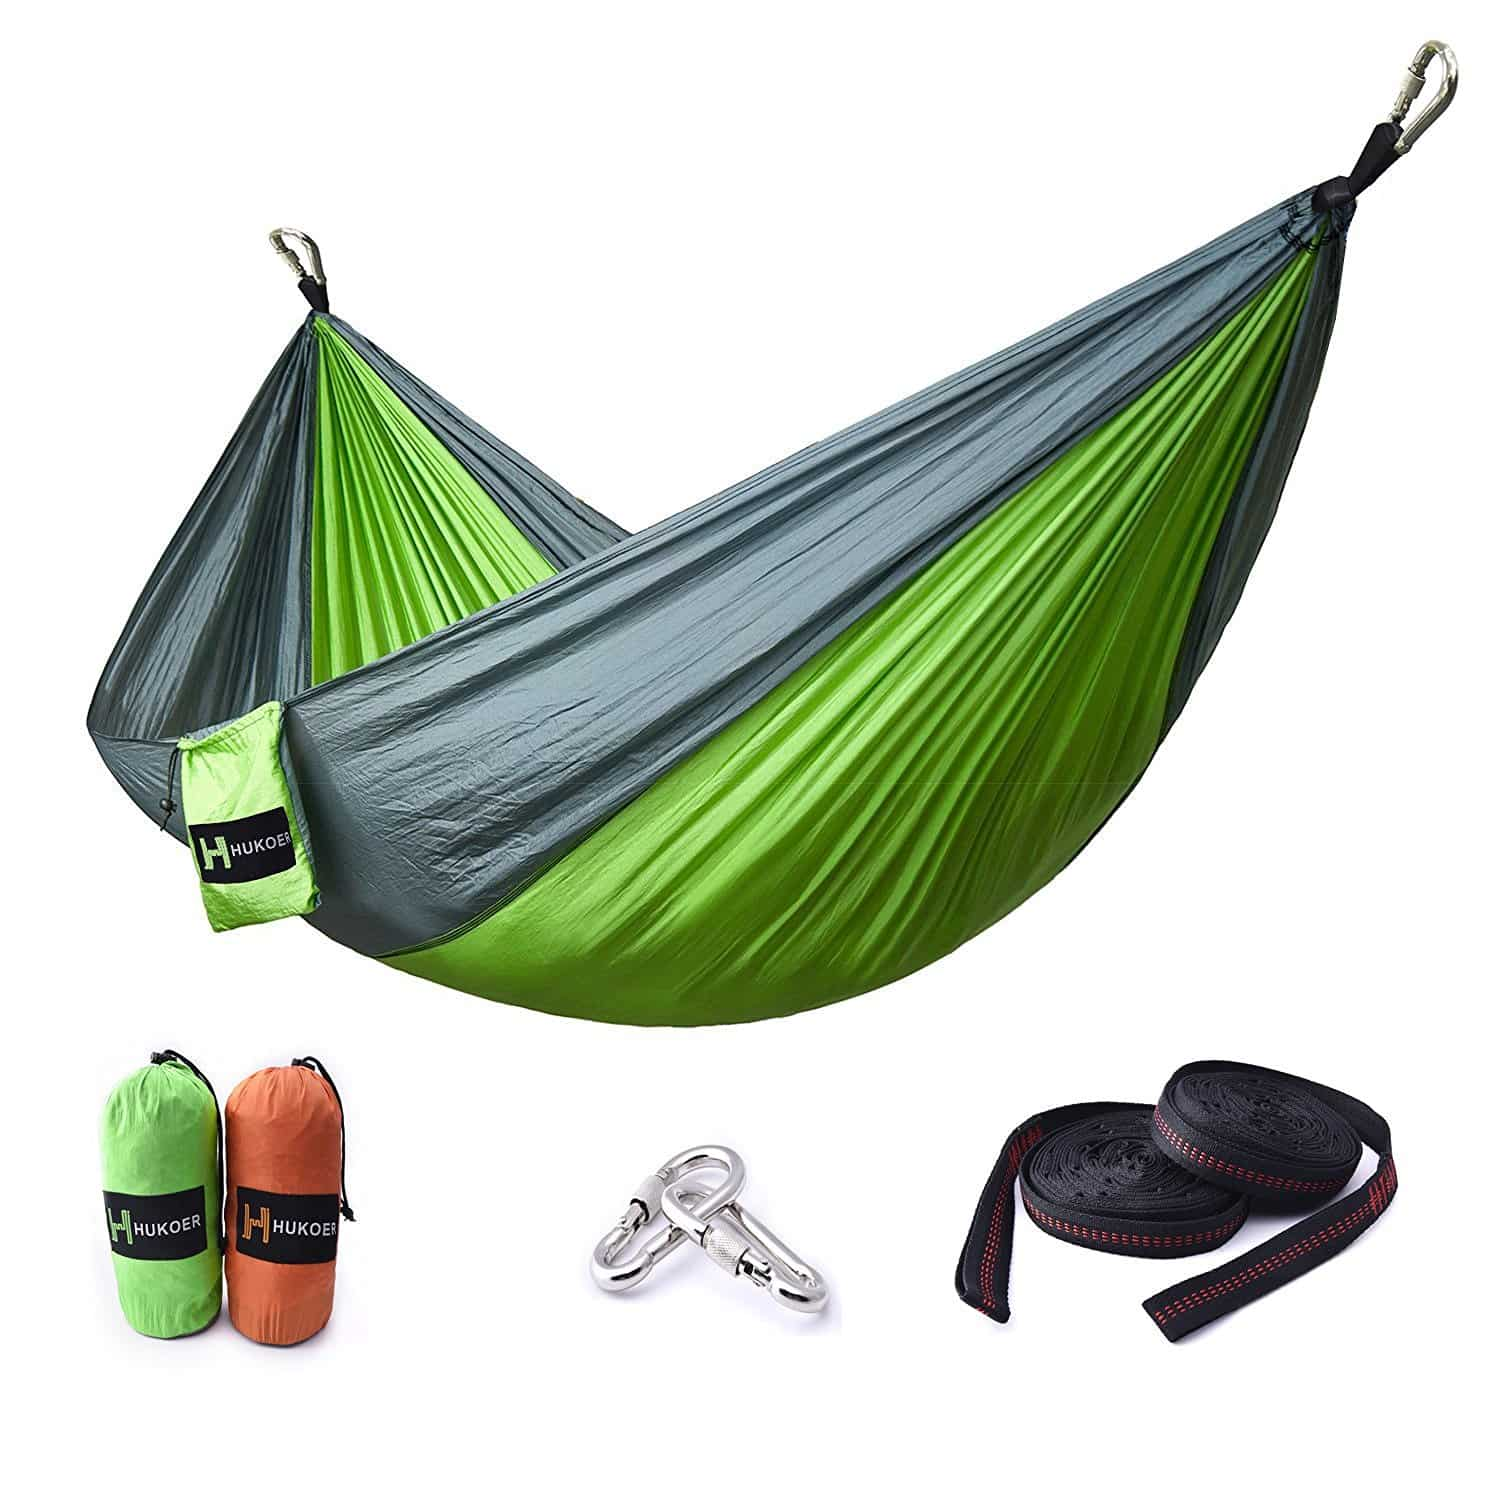 best hammockskybraziliandoublehammock hammock twopersonbedforbackyardporchoutdoorandindooruse to the buy hammocks softwovencottonfabricforsupremecomfortnatural in